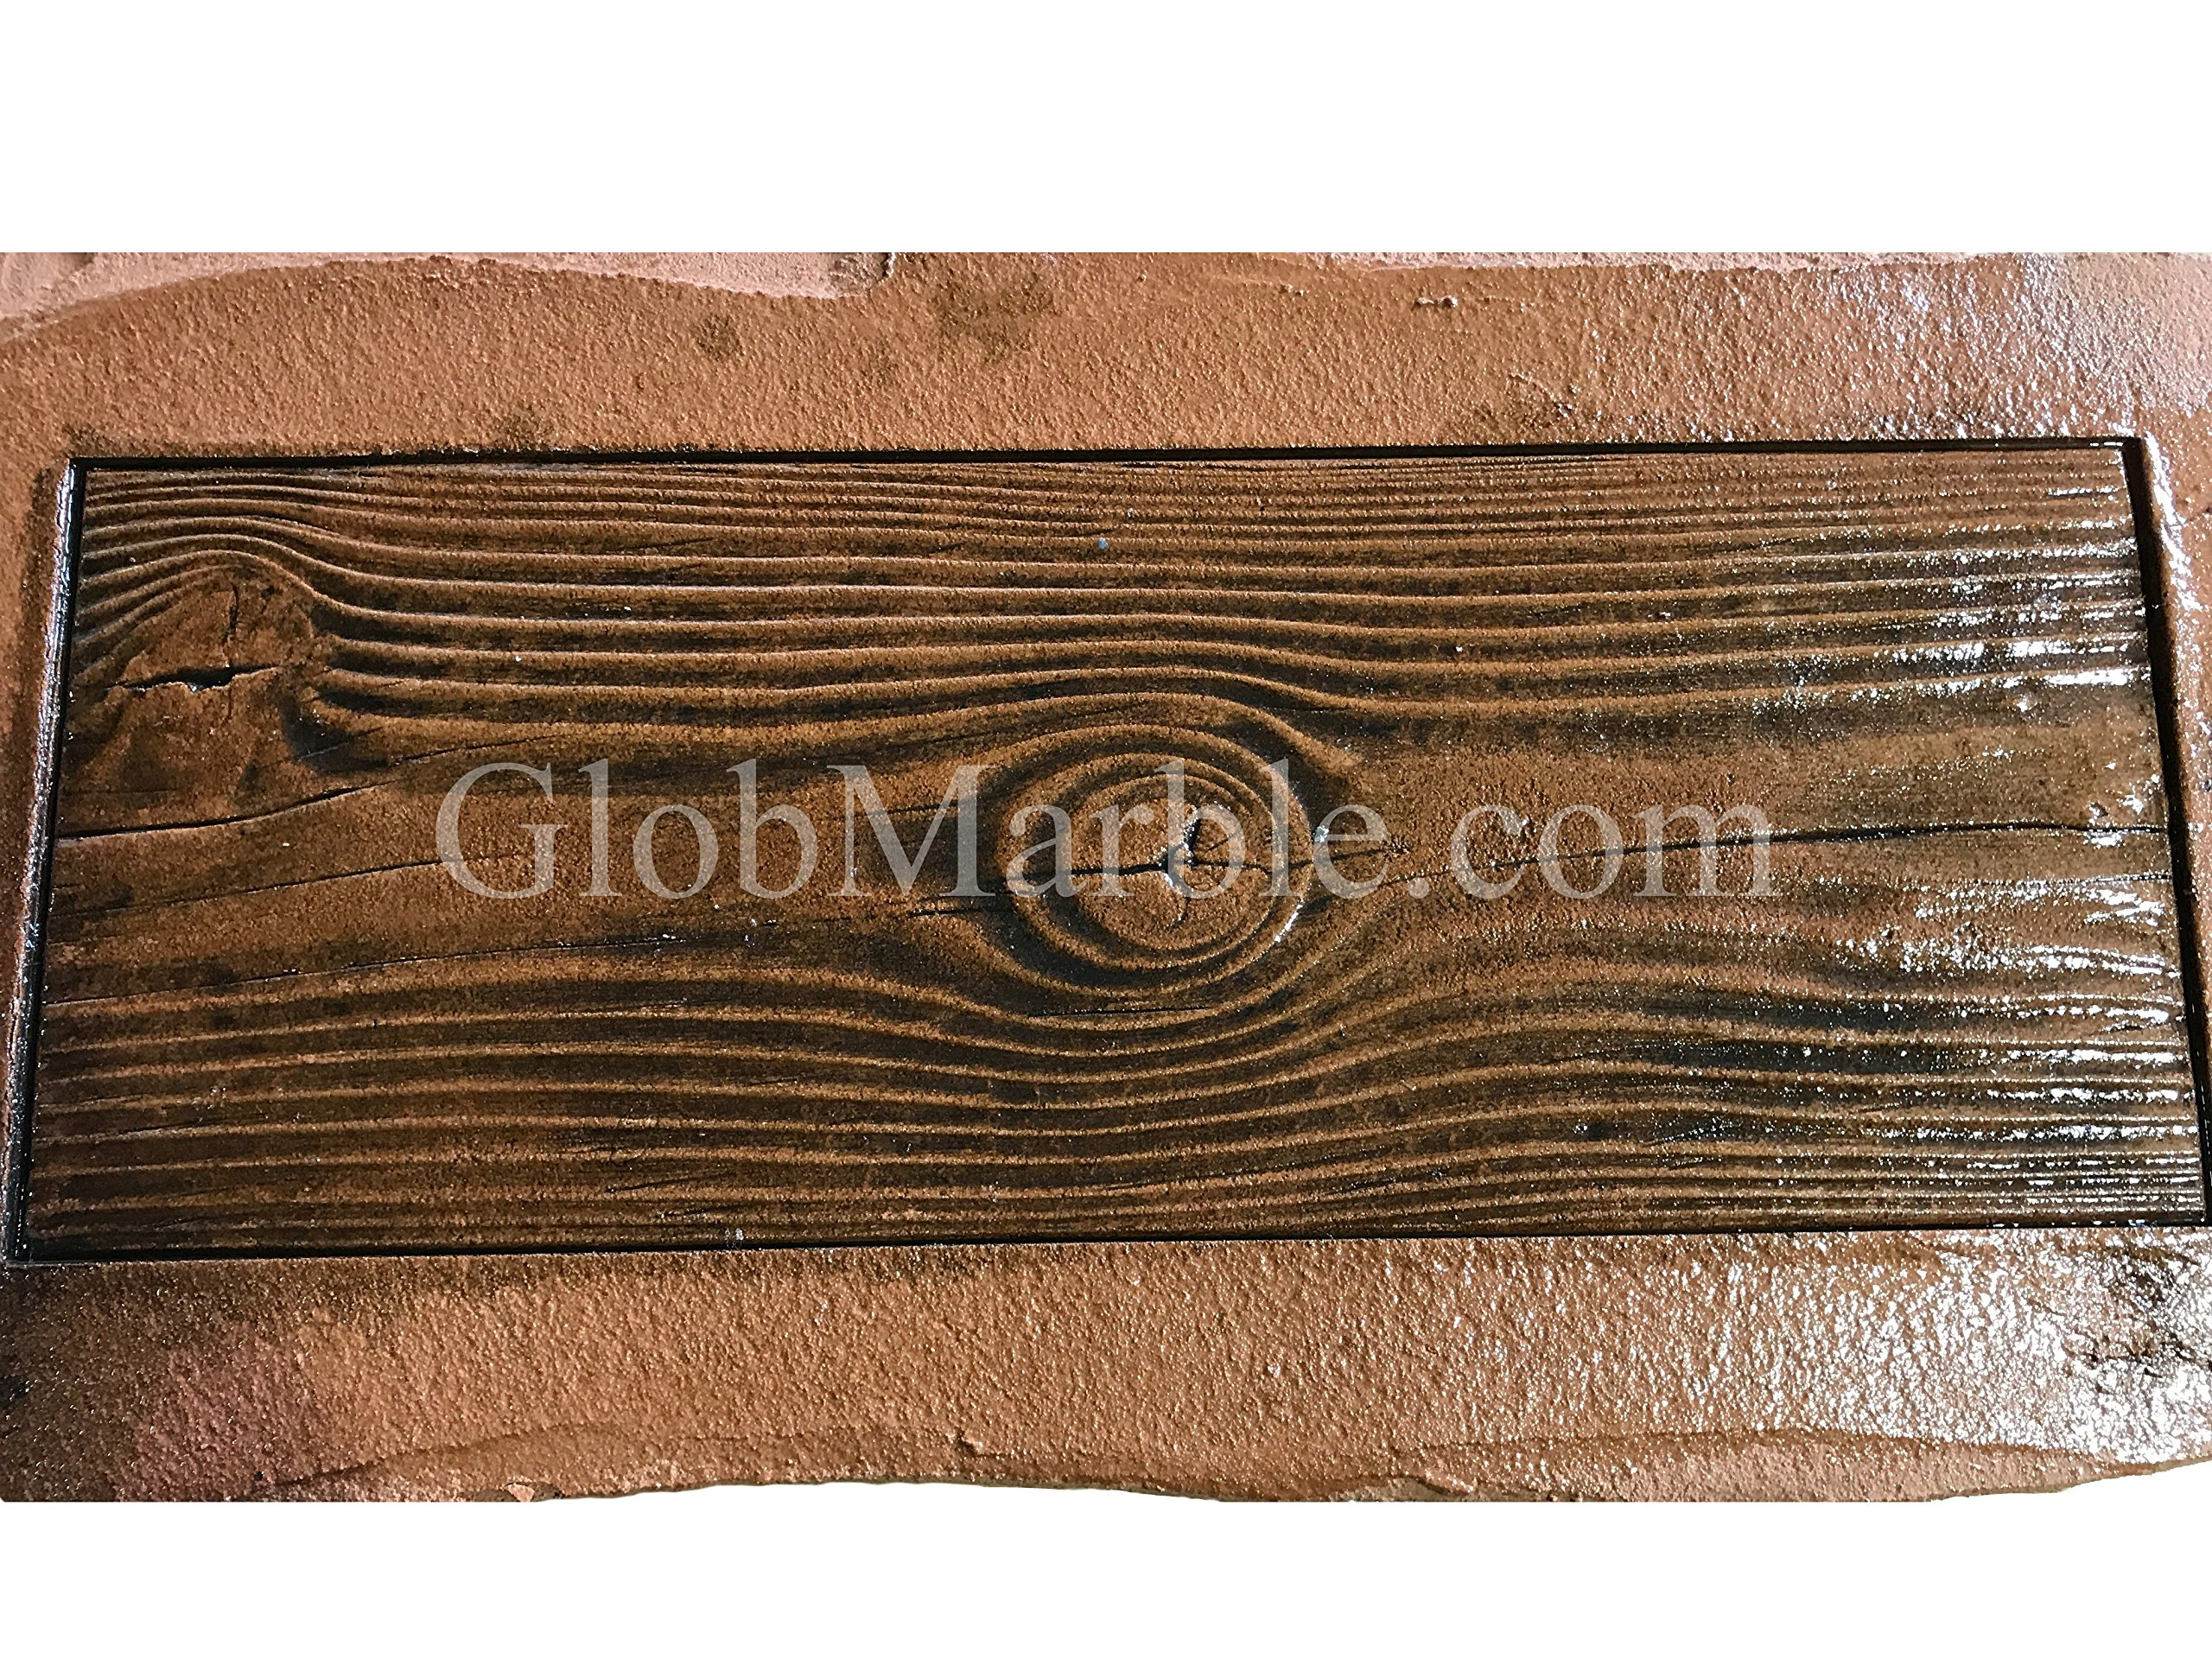 GlobMarble Wood Plank Concrete Stamp Set. Wood Texture Stamp Mat SM 5000 S. 5 Pieces Woodgrain by GlobMarble